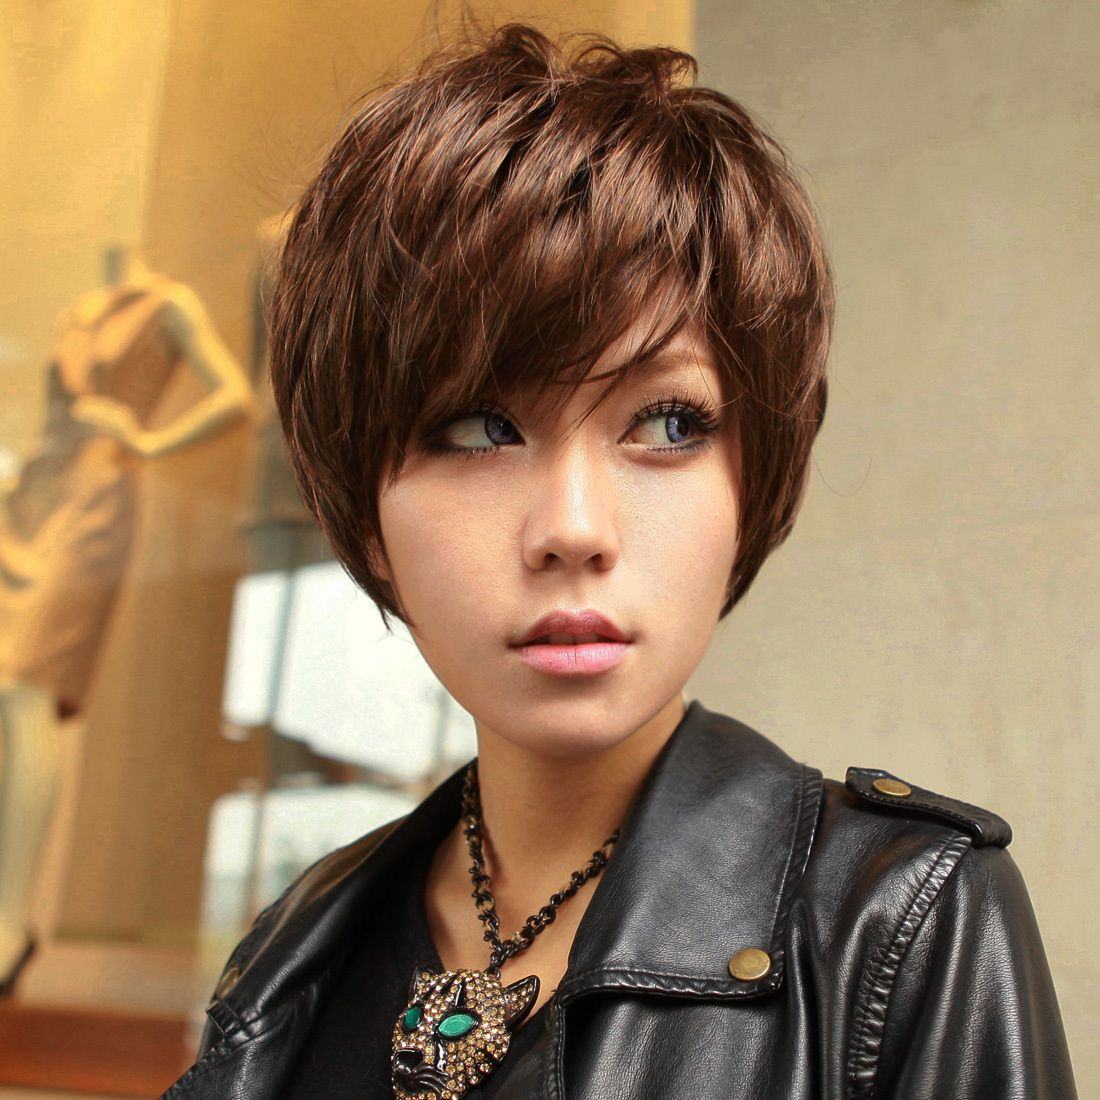 Real Life Anime Hairstyles For Girls Google Search Walk Walk